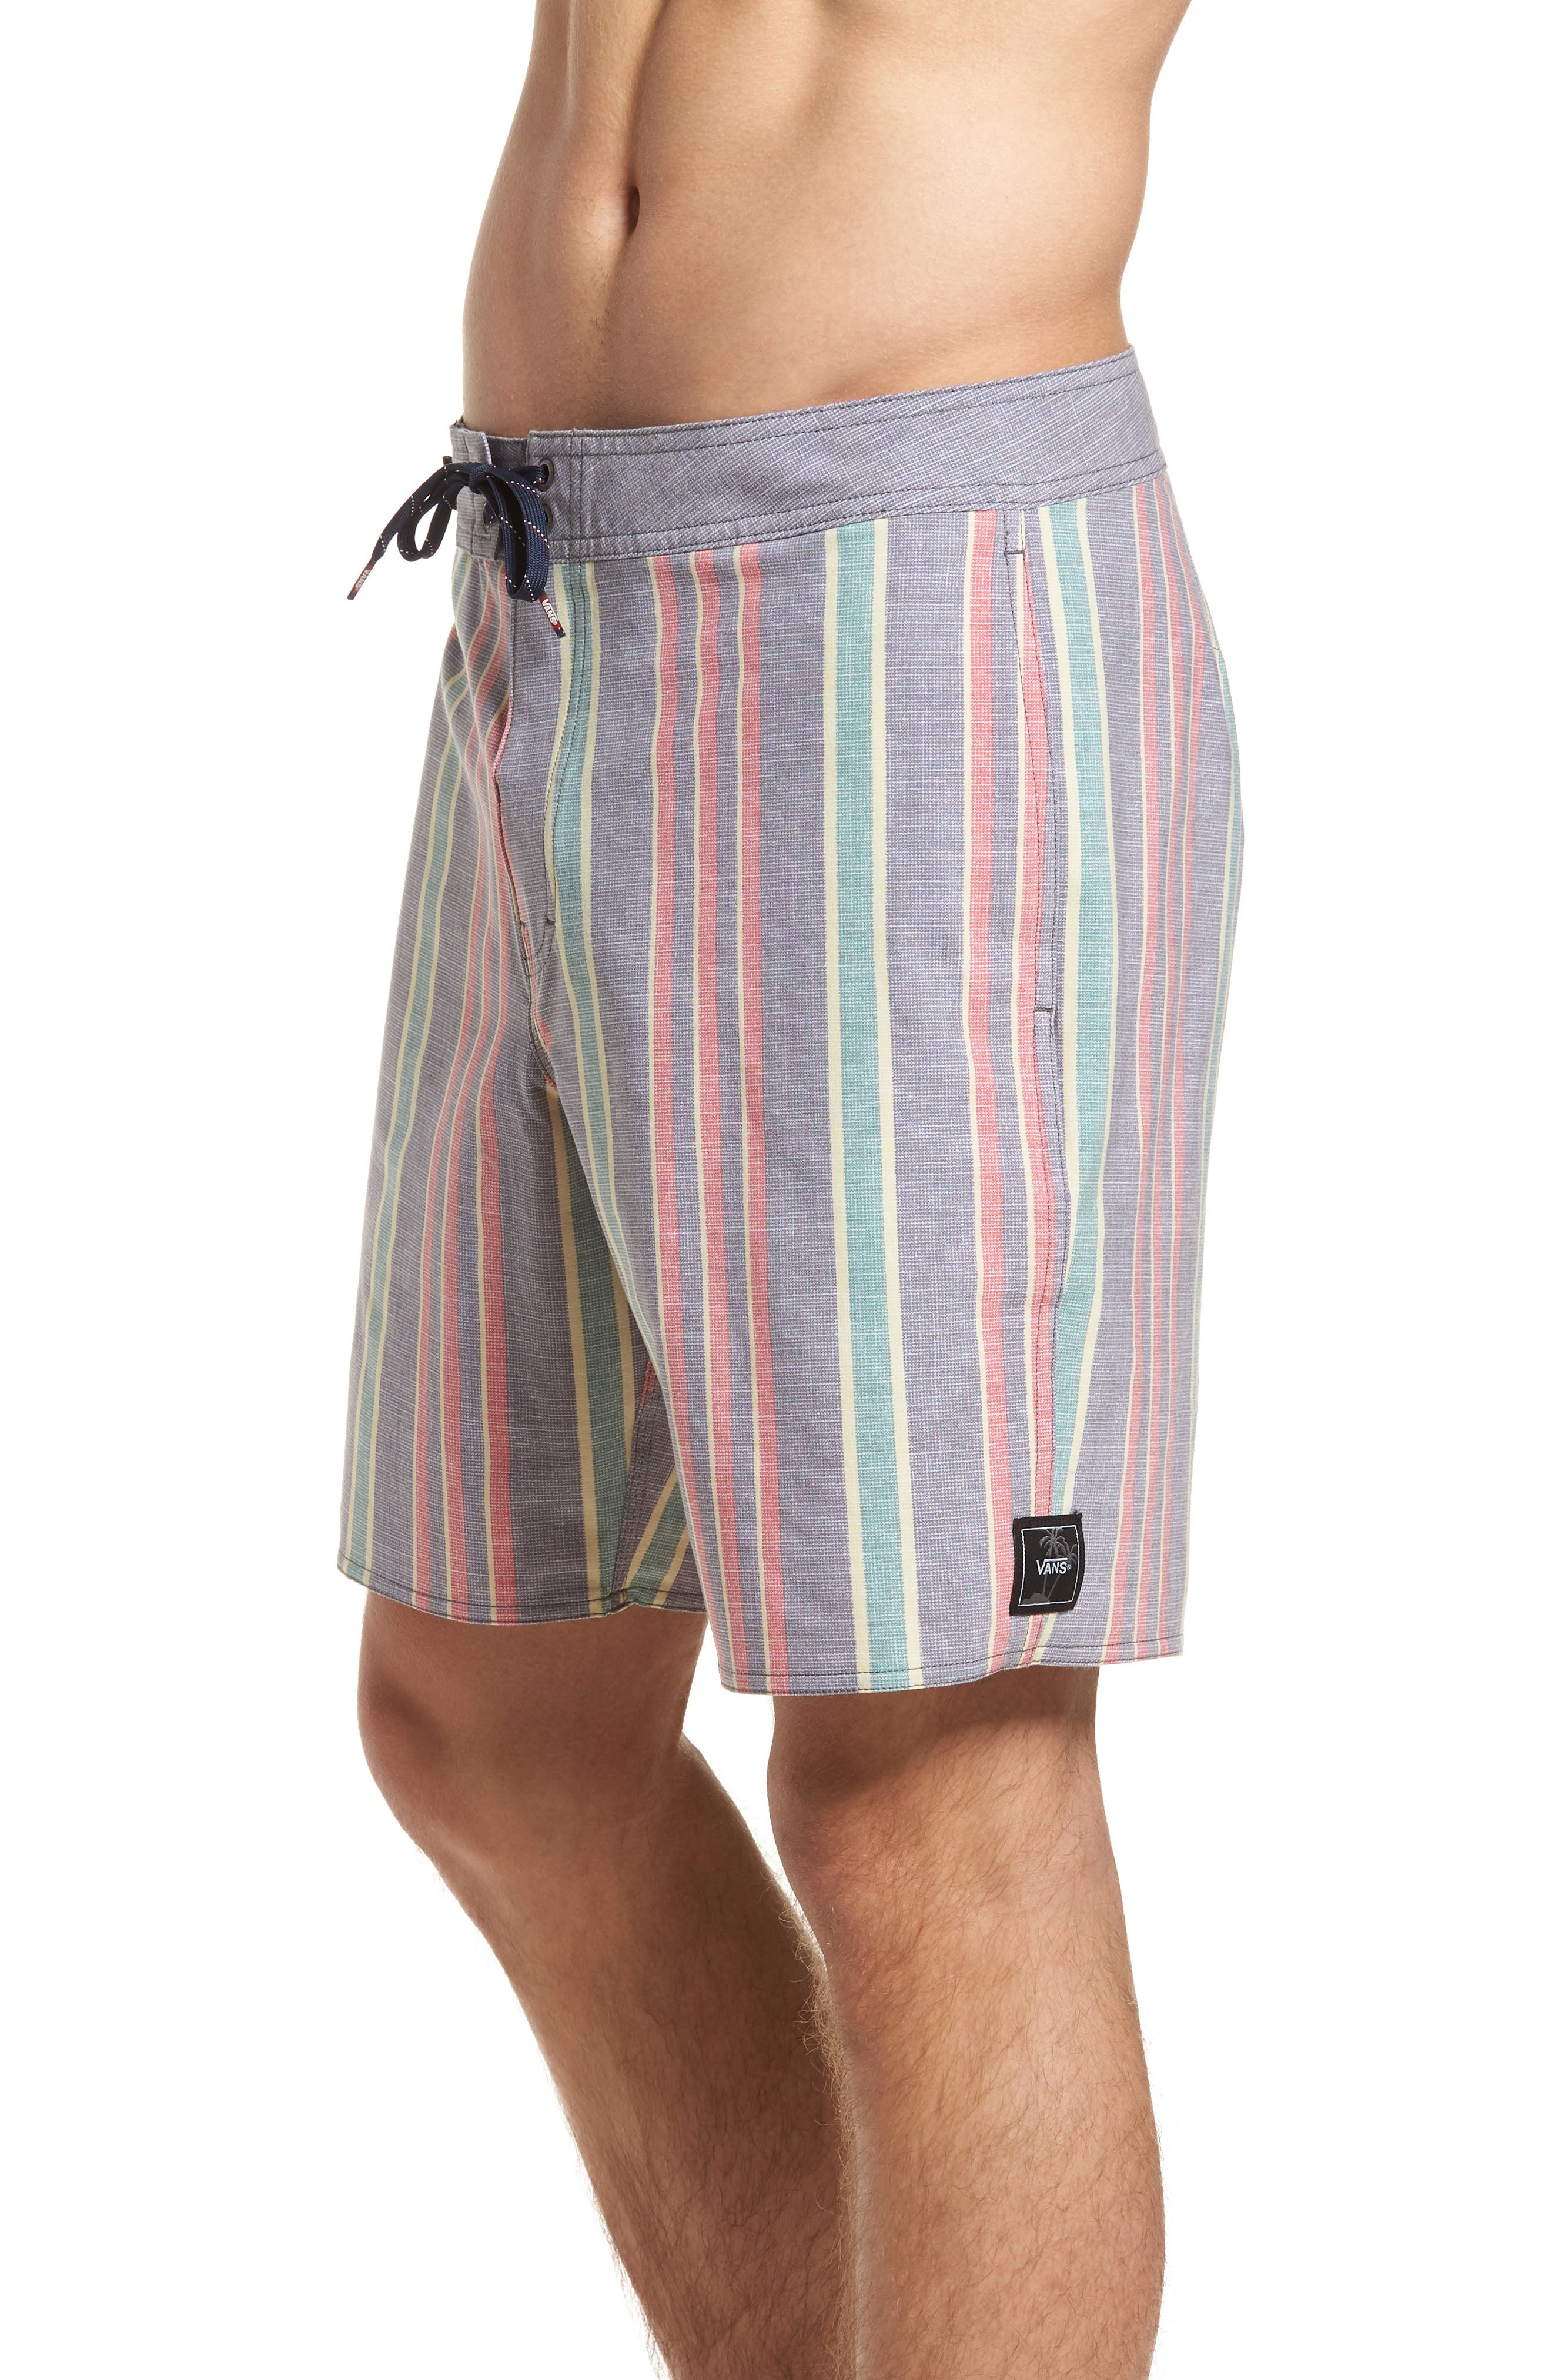 Vertical Stripe Board Shorts,                             Alternate thumbnail 4, color,                             Dress Blues